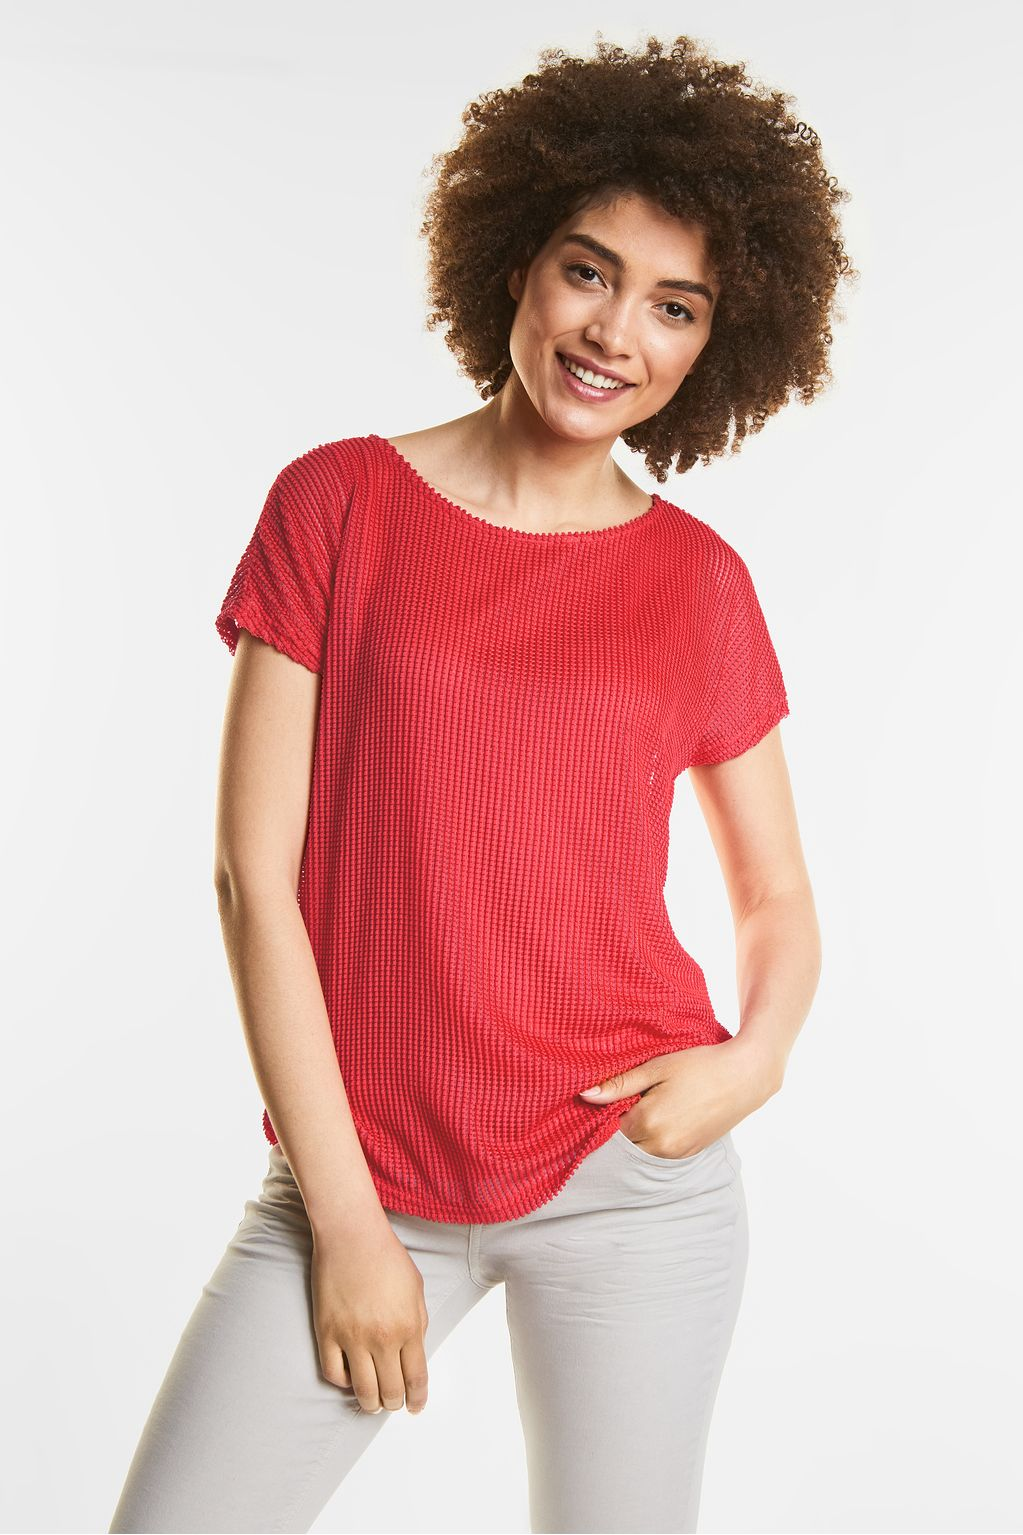 T-shirt dÆaspect filet - hibiscus red